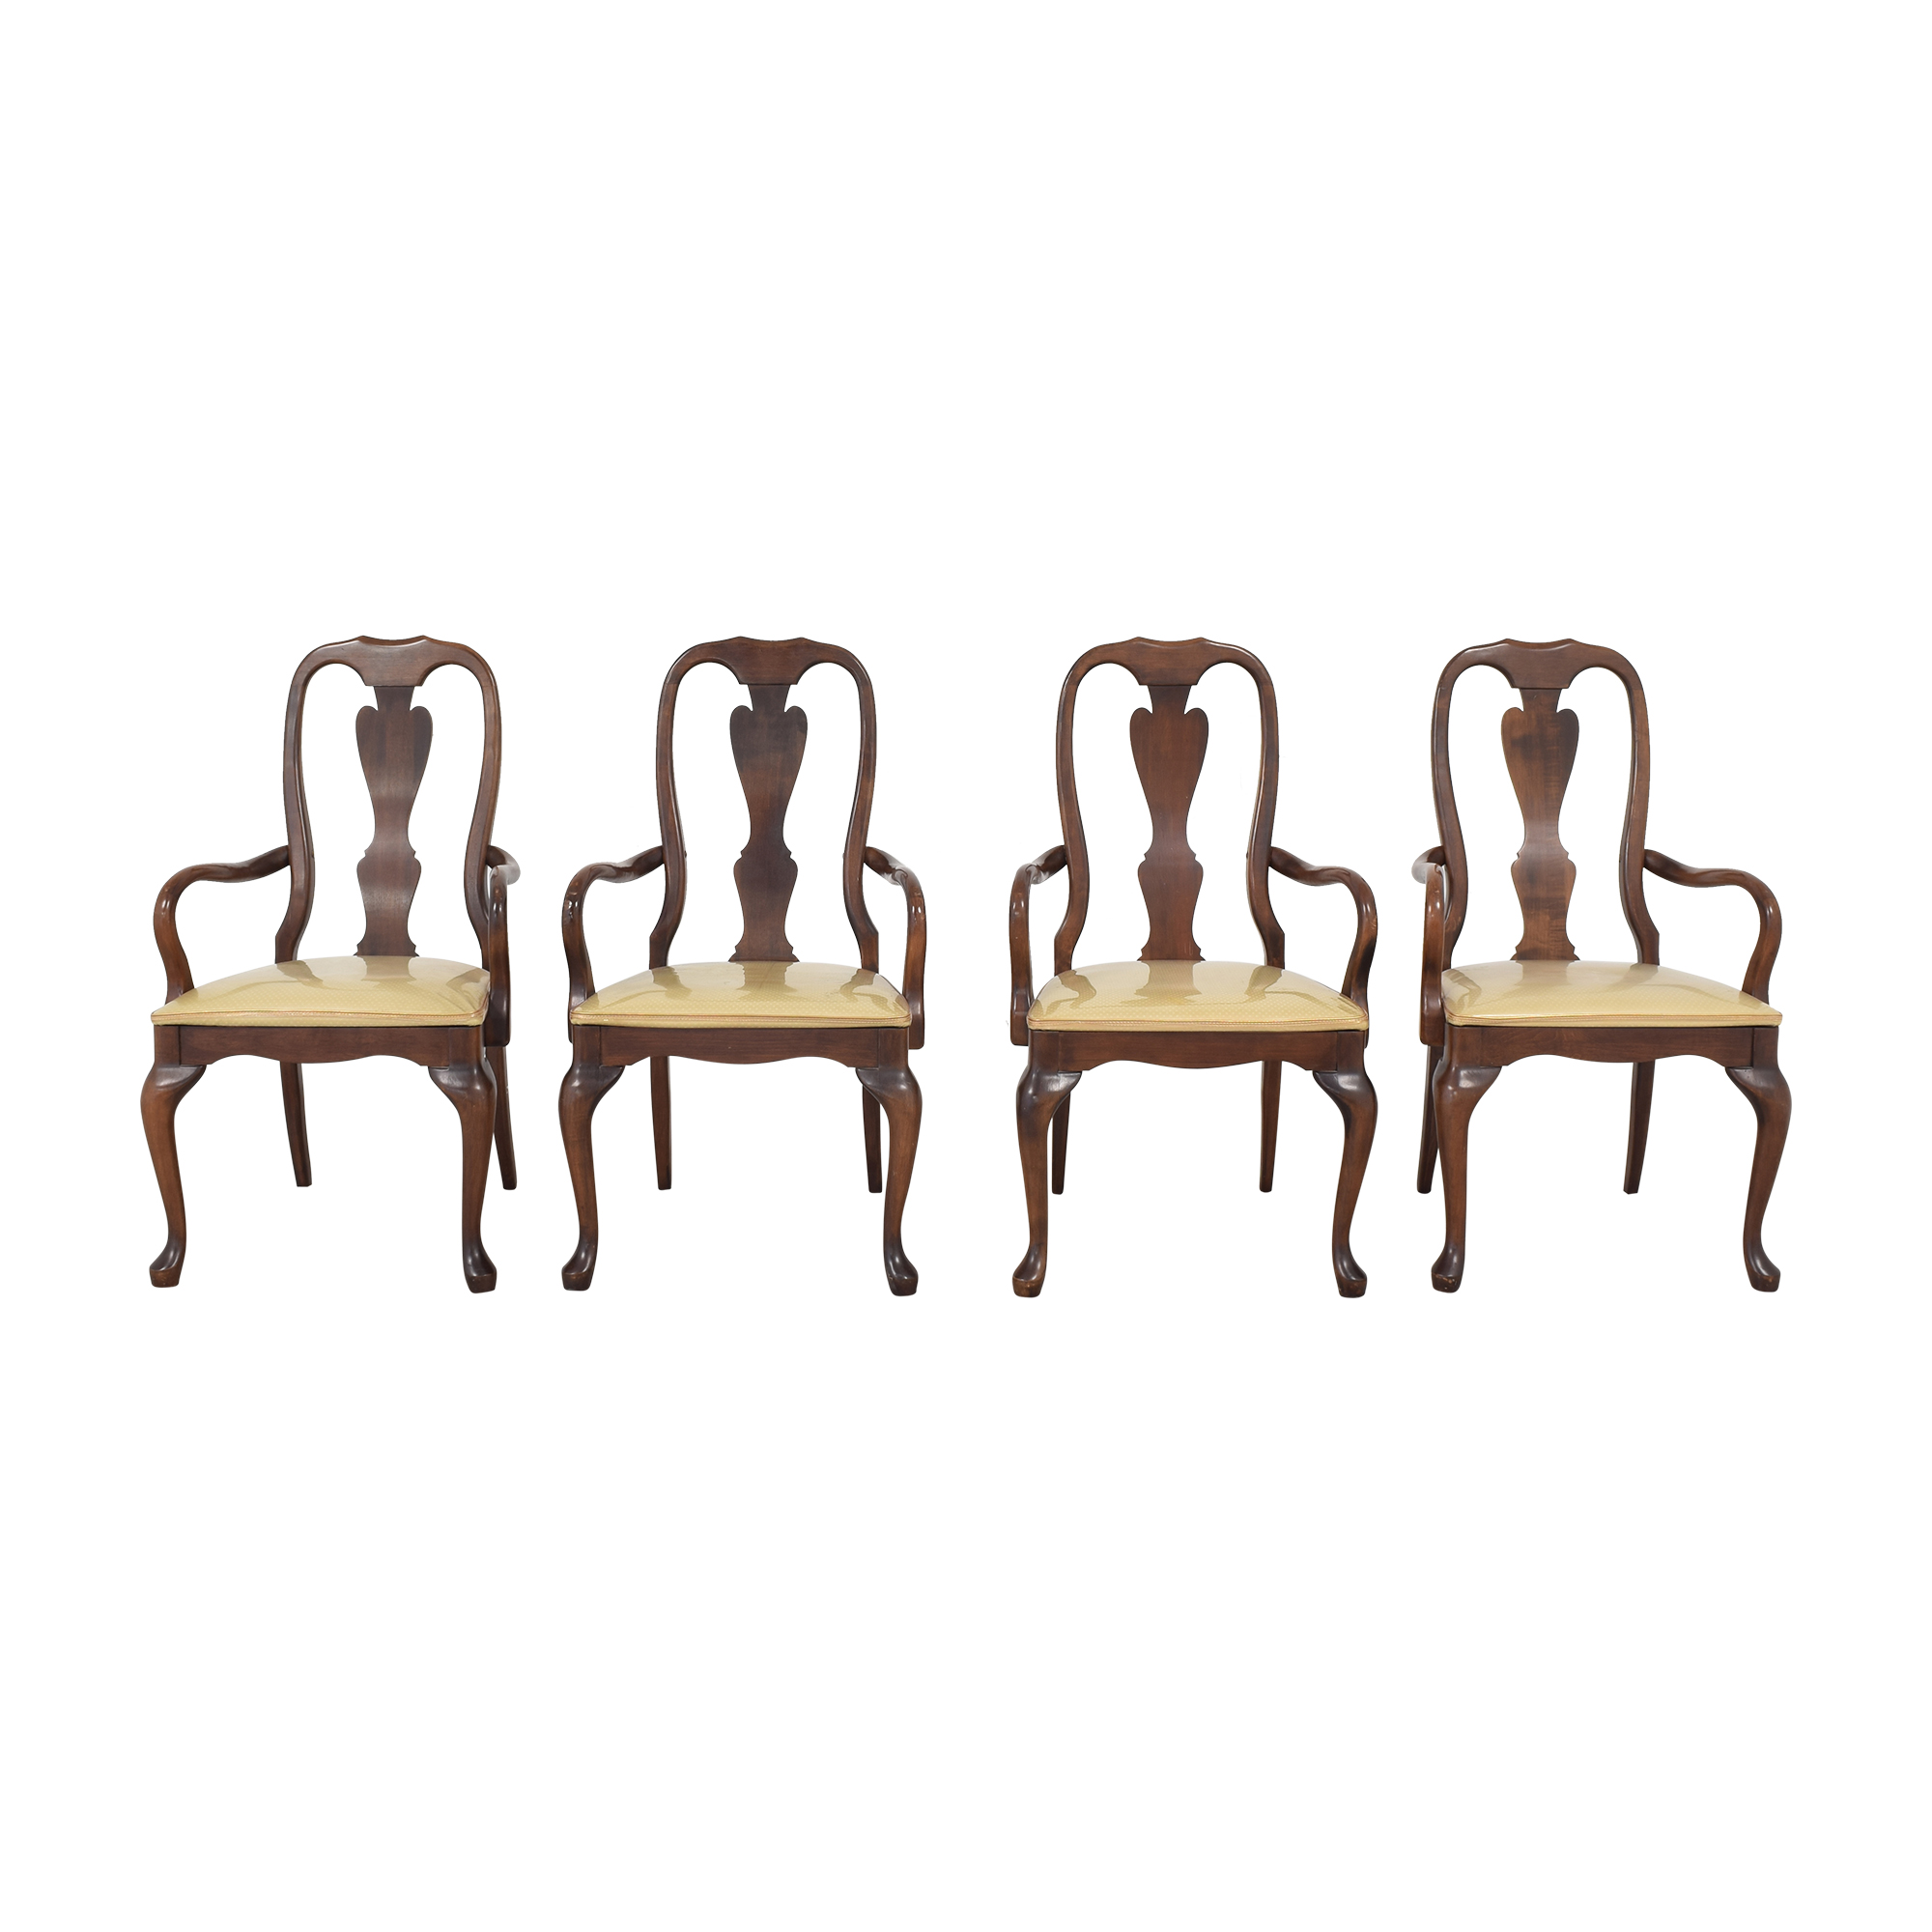 Crawford Furniture Crawford Furniture Dining Chairs second hand